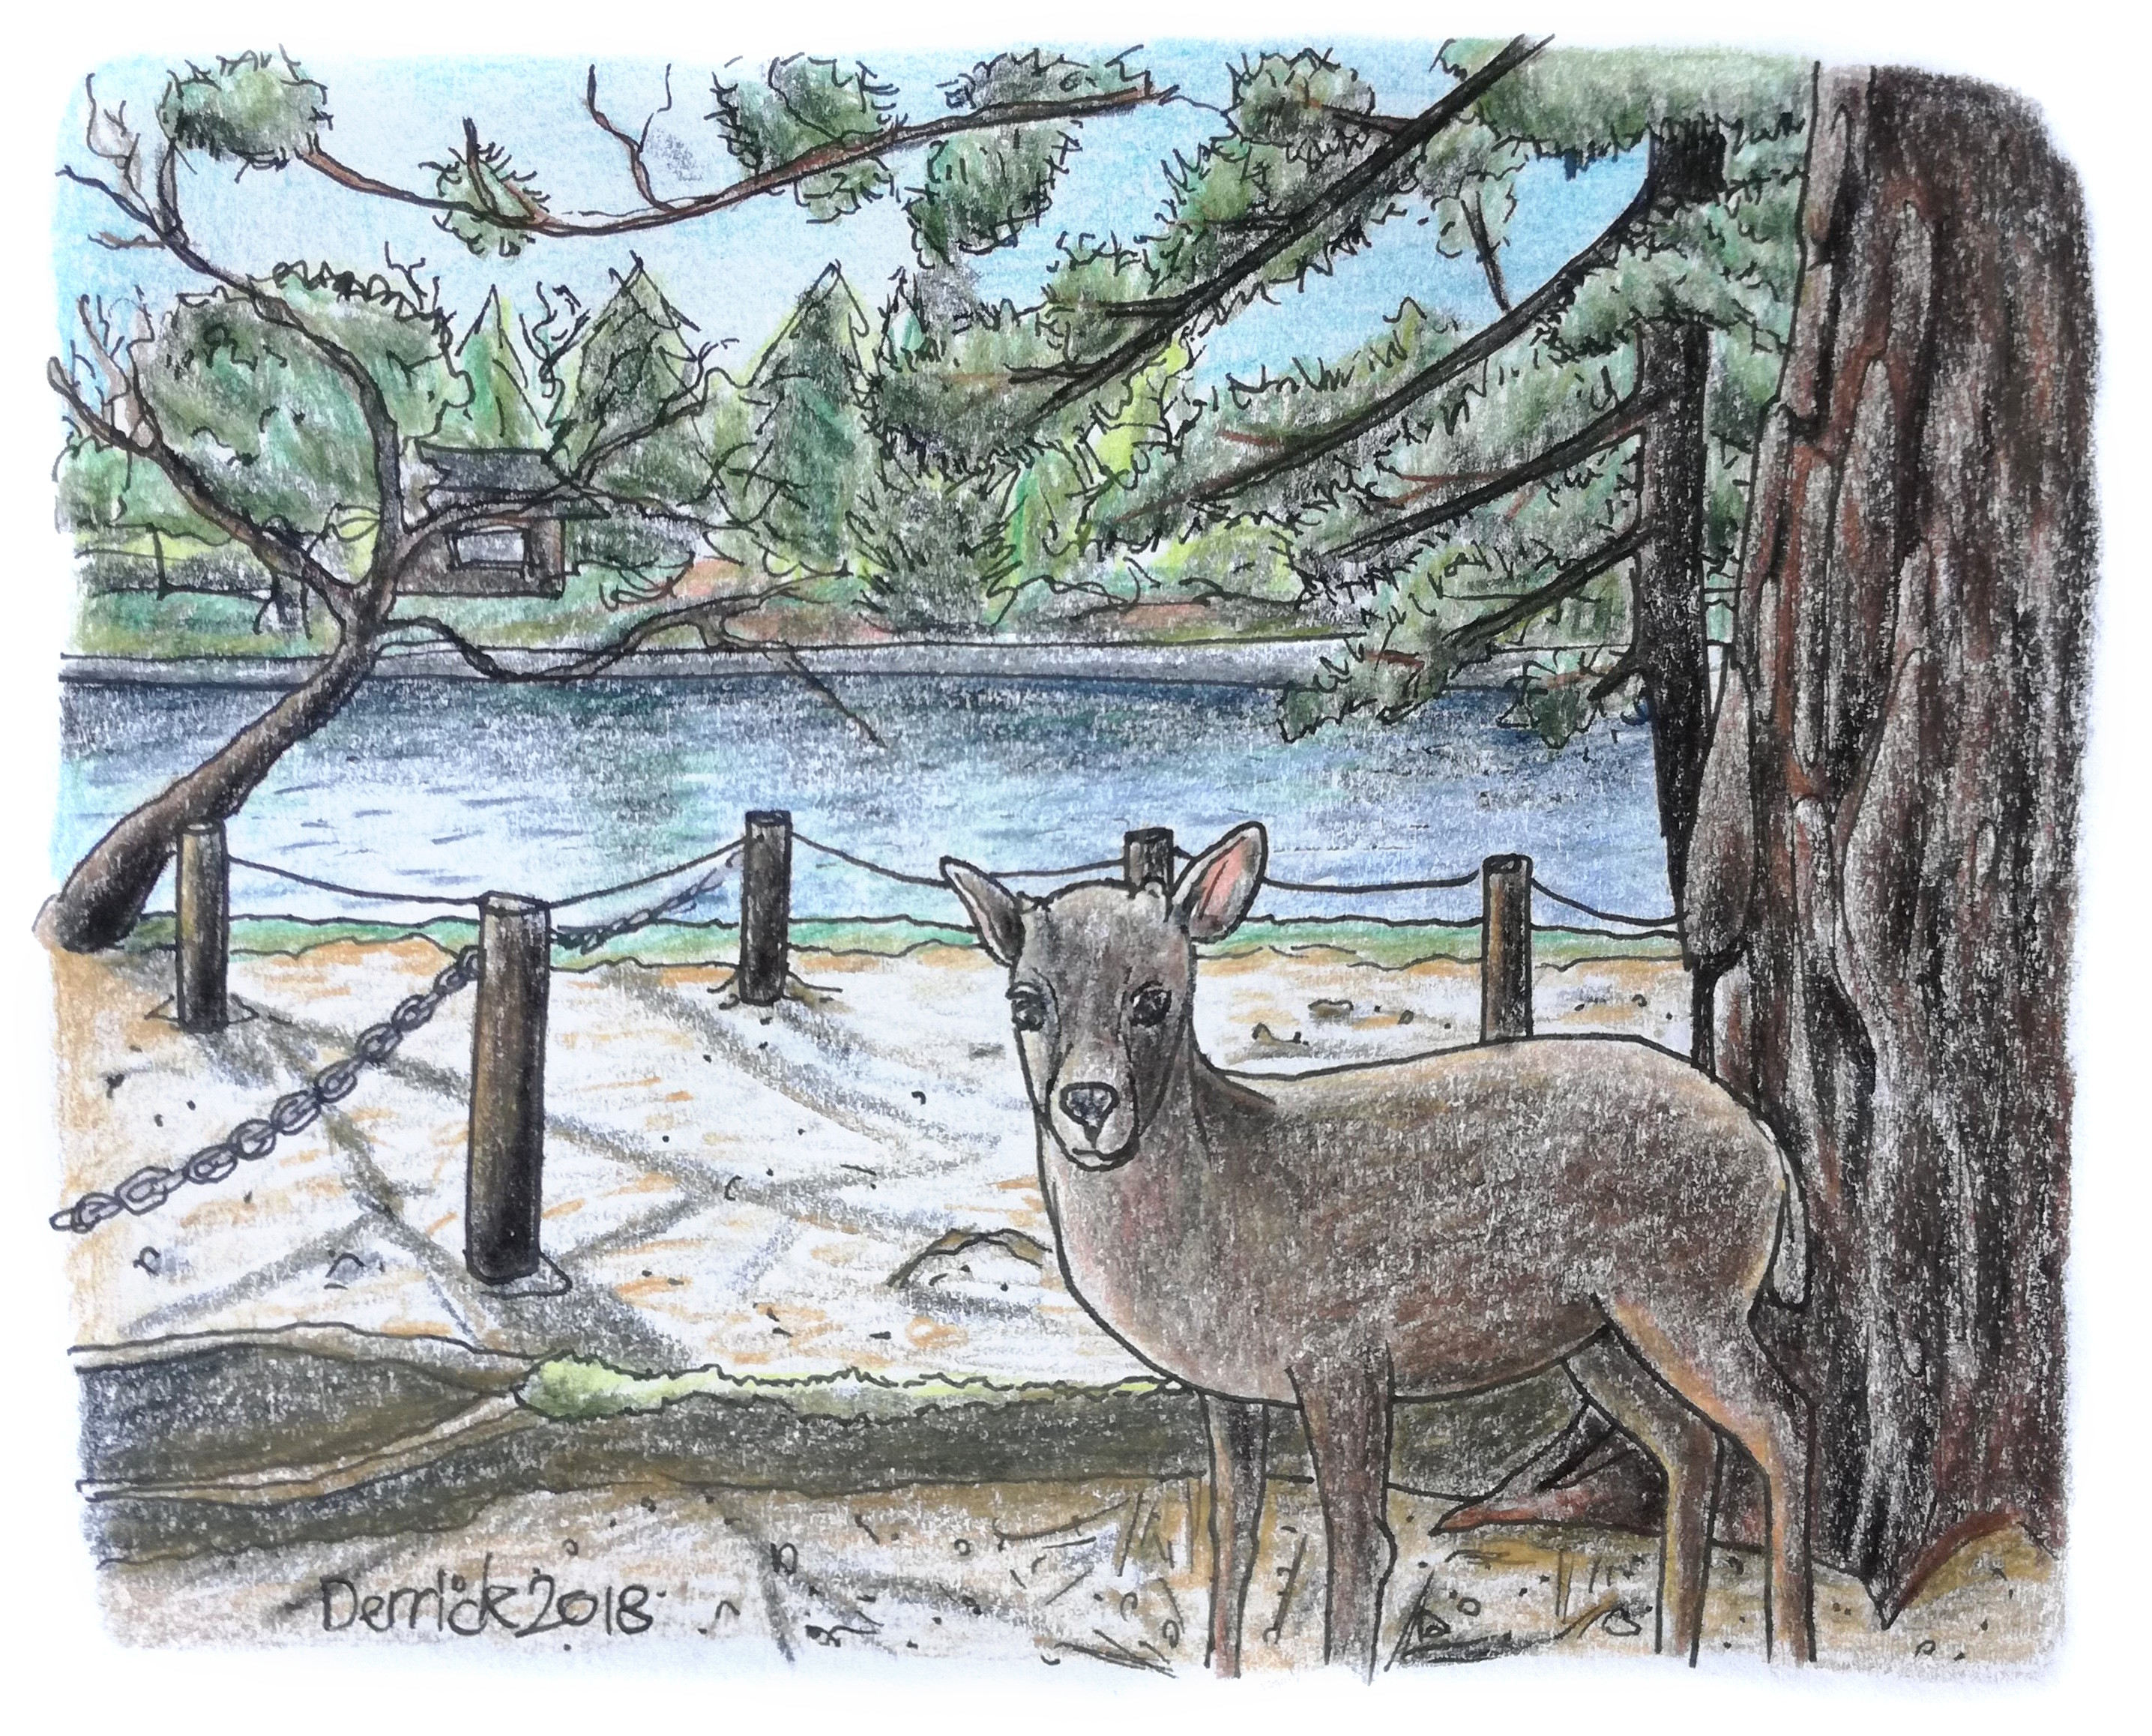 Sketch of a Nara deer